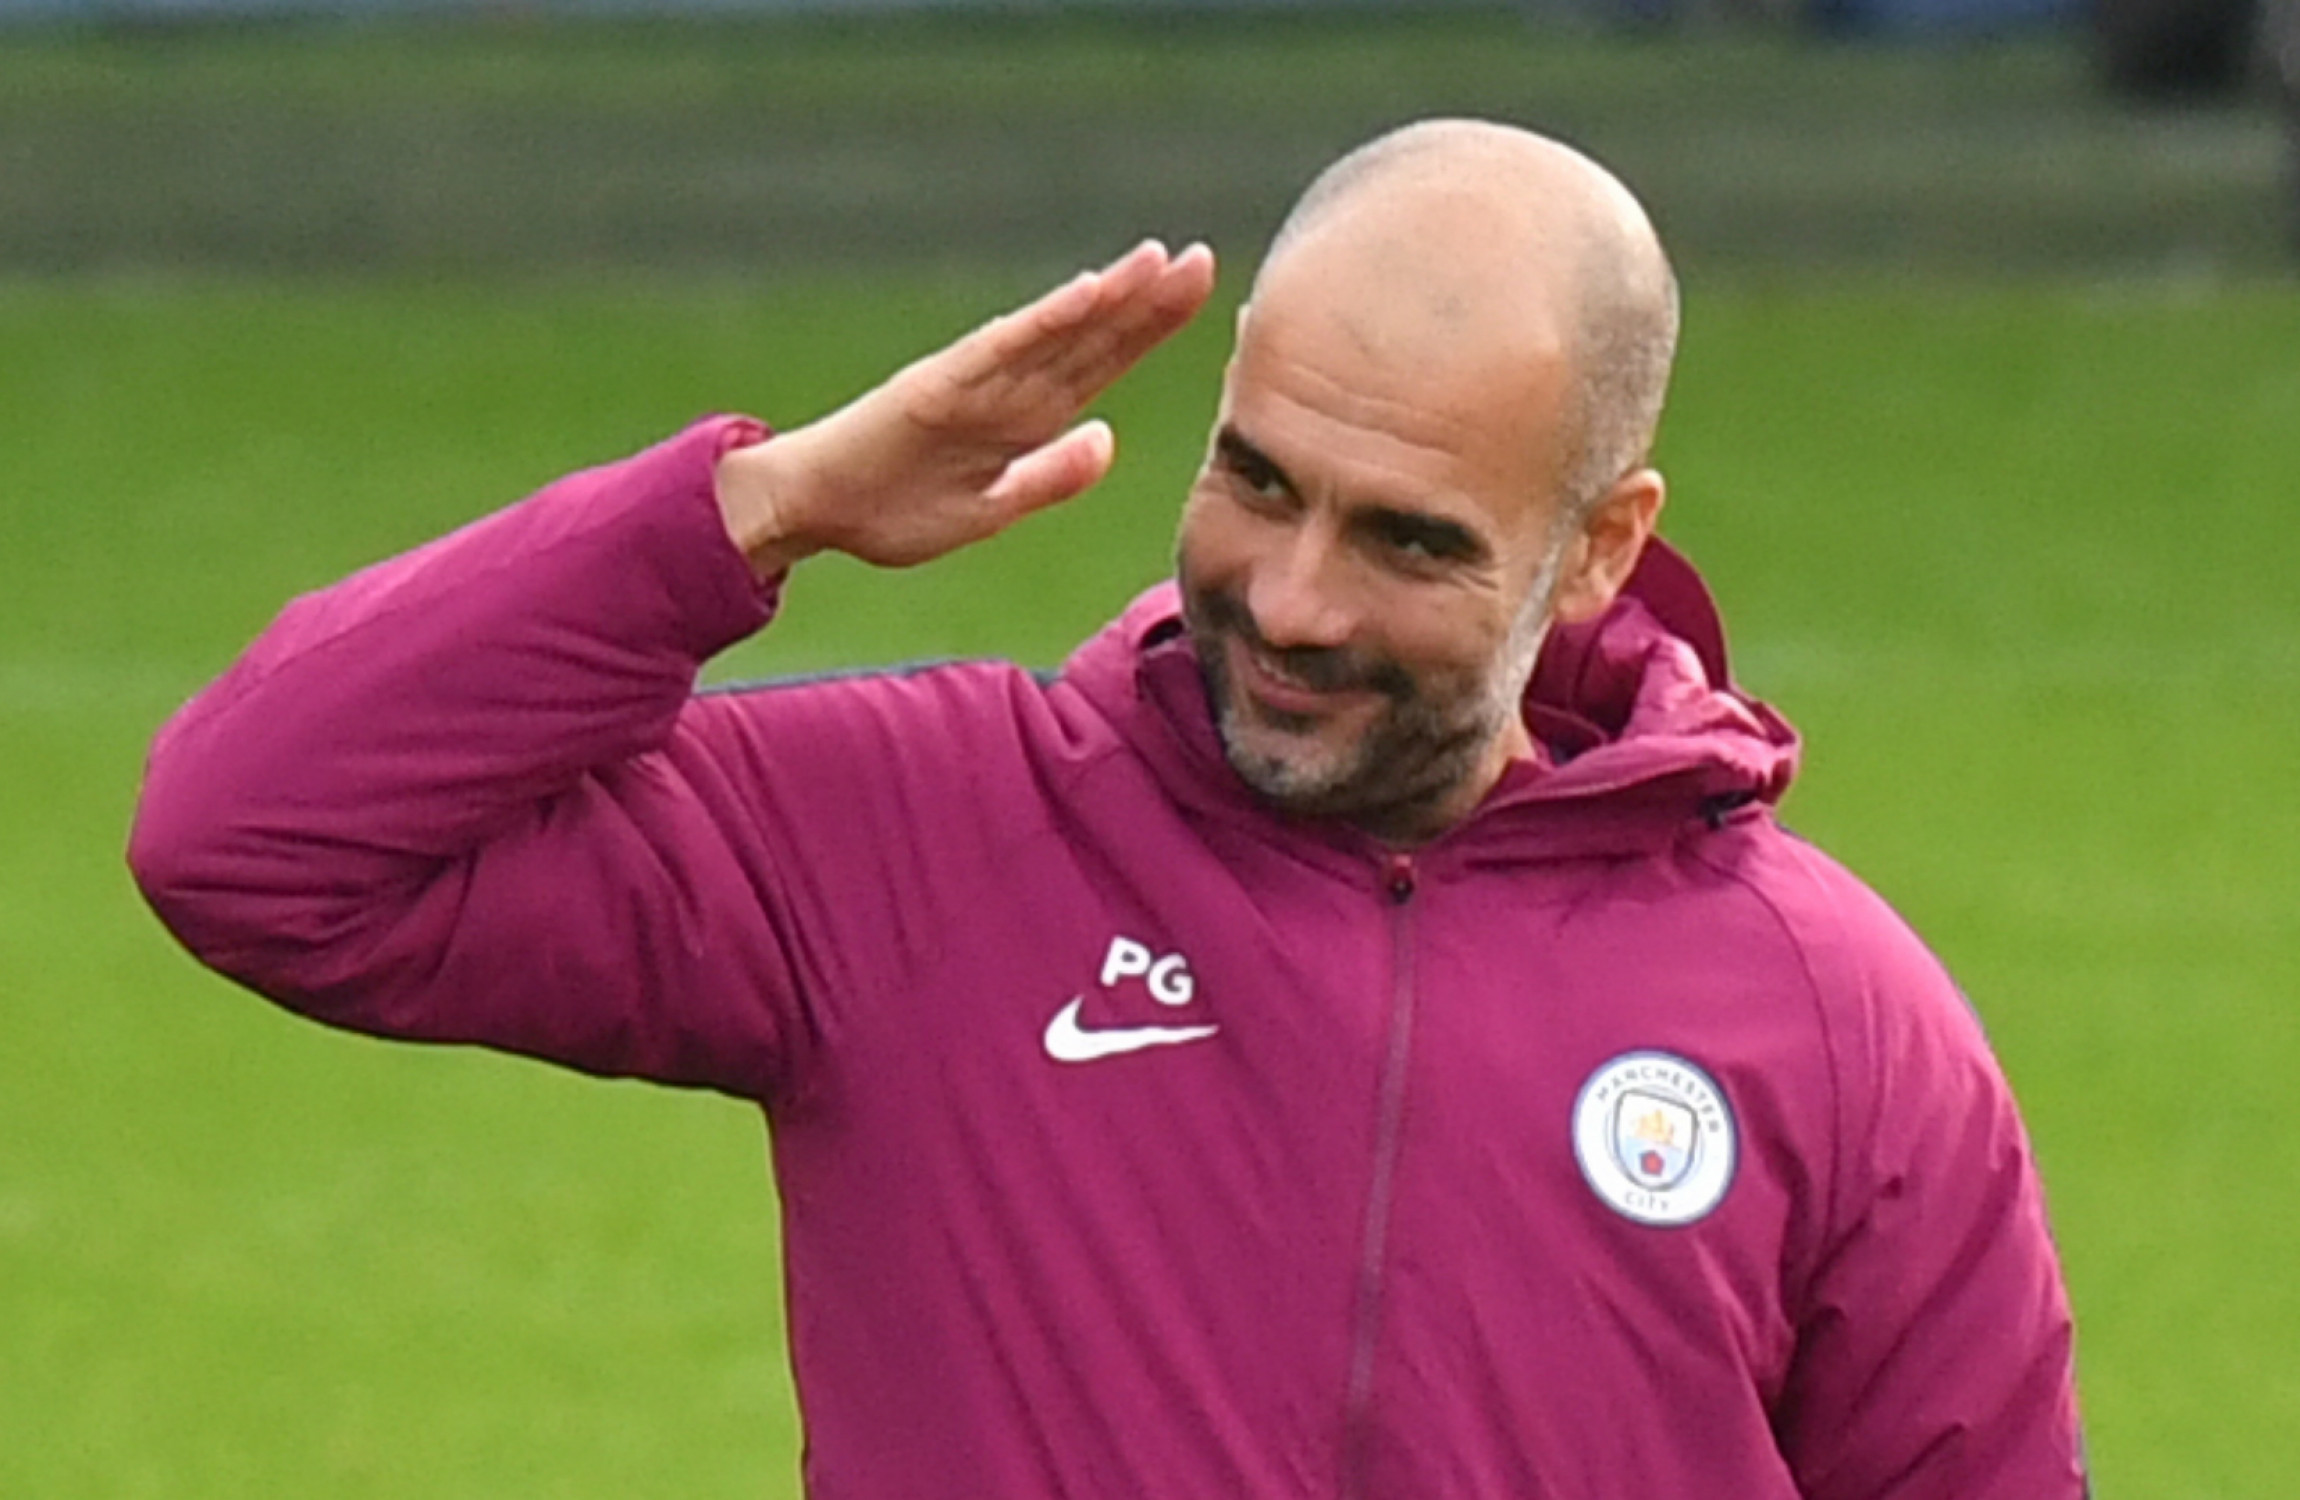 Manchester City onto something 'special' with Pep Guardiola - Ilkay Gundogan